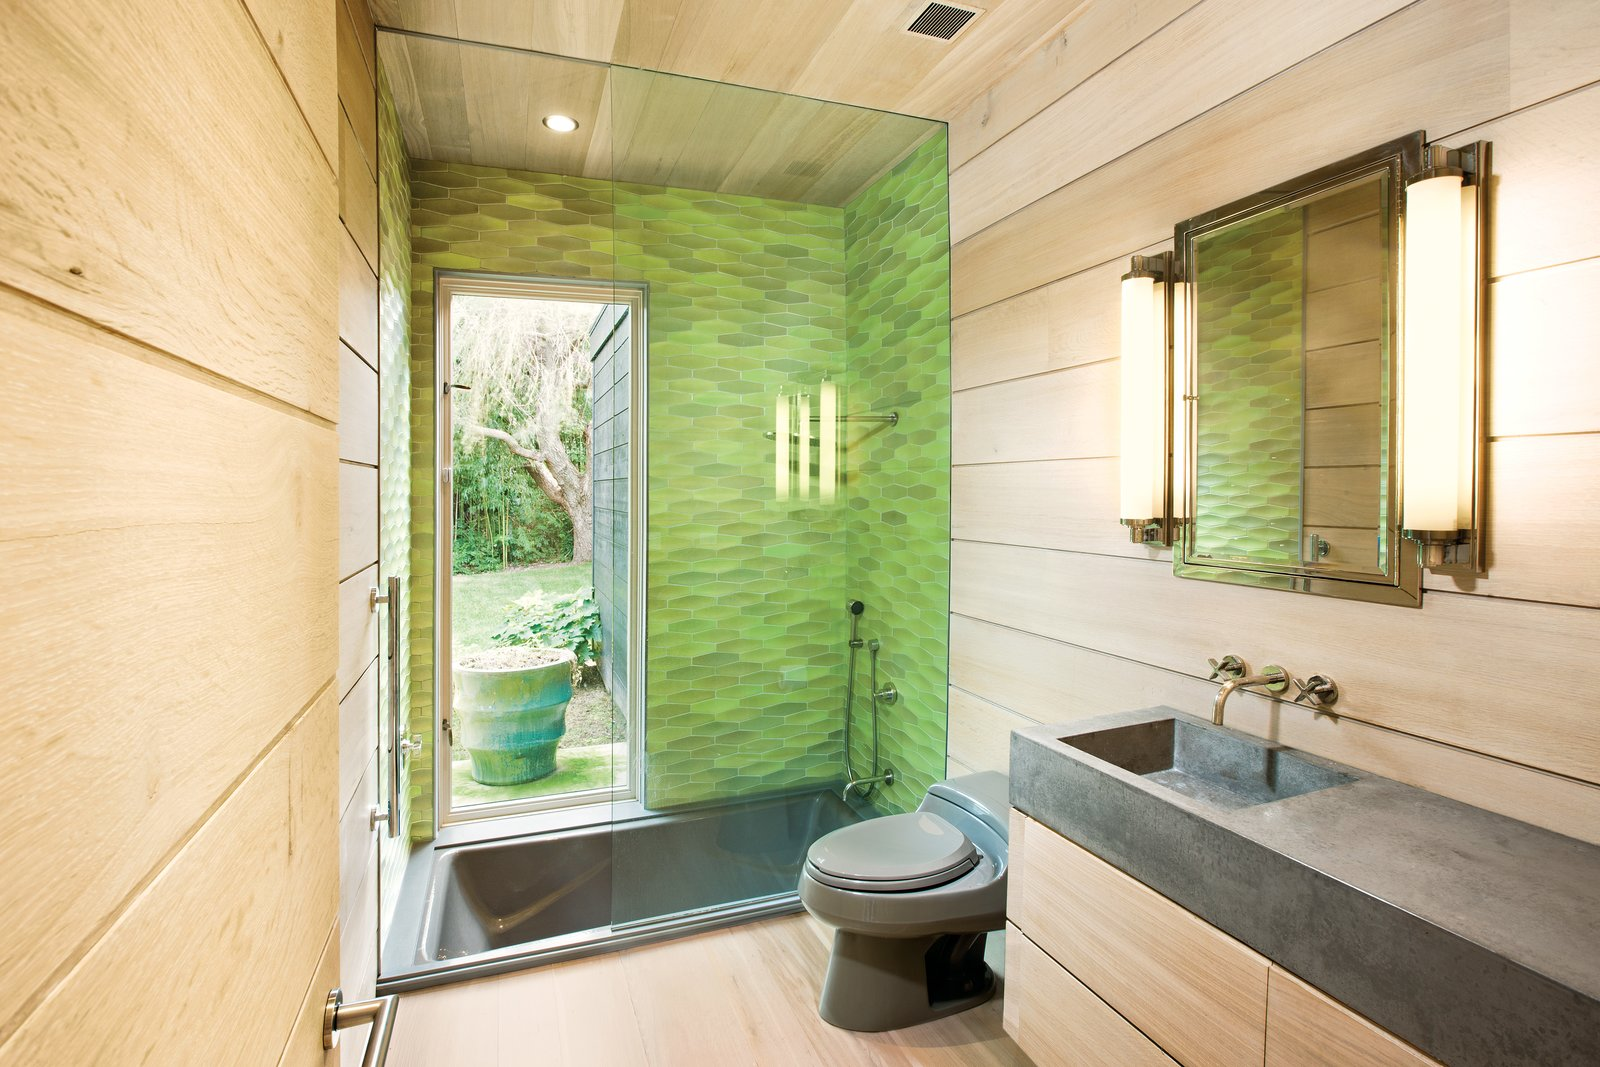 In the bathroom, Martin selected Heath Ceramics Conclave Diamond tile in citrus green for the glass-enclosed Kohler tub, which is outfitted with nickel Kallista fixtures. A matching toilet by Kohler   in the color Cashmere blends with the custom-fabricated concrete sink by Get Real Surfaces. Photo by Patrick Bernard. Tagged: Bath Room, Soaking Tub, Enclosed Shower, Light Hardwood Floor, and Concrete Counter.  Mid Century from A Sustainable Mid-Century Beach House